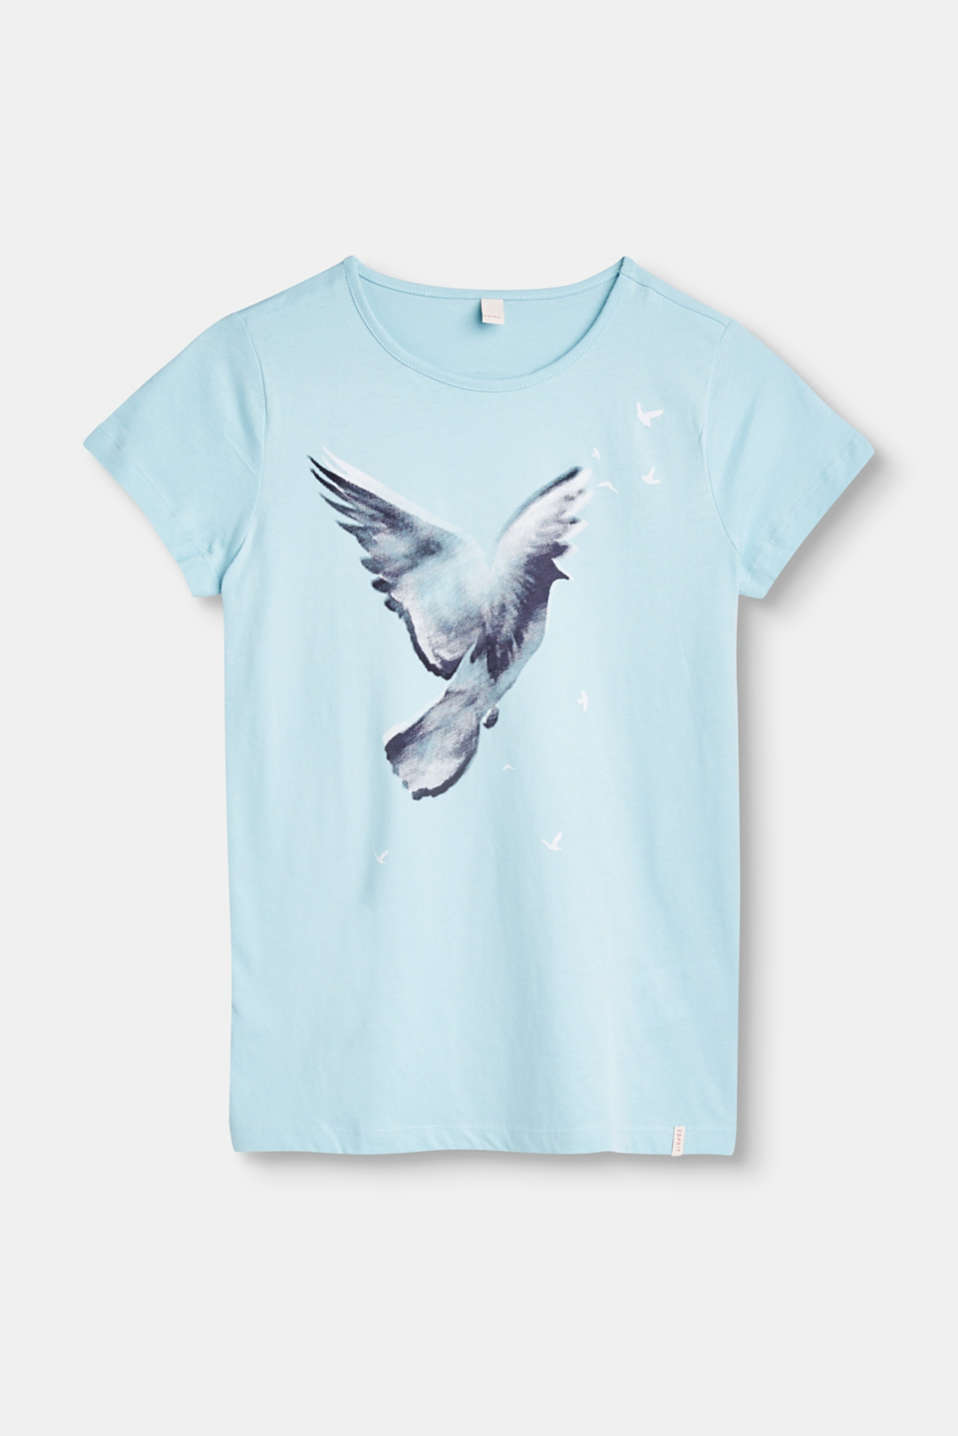 Esprit - T-shirt with a bird print, 100% cotton